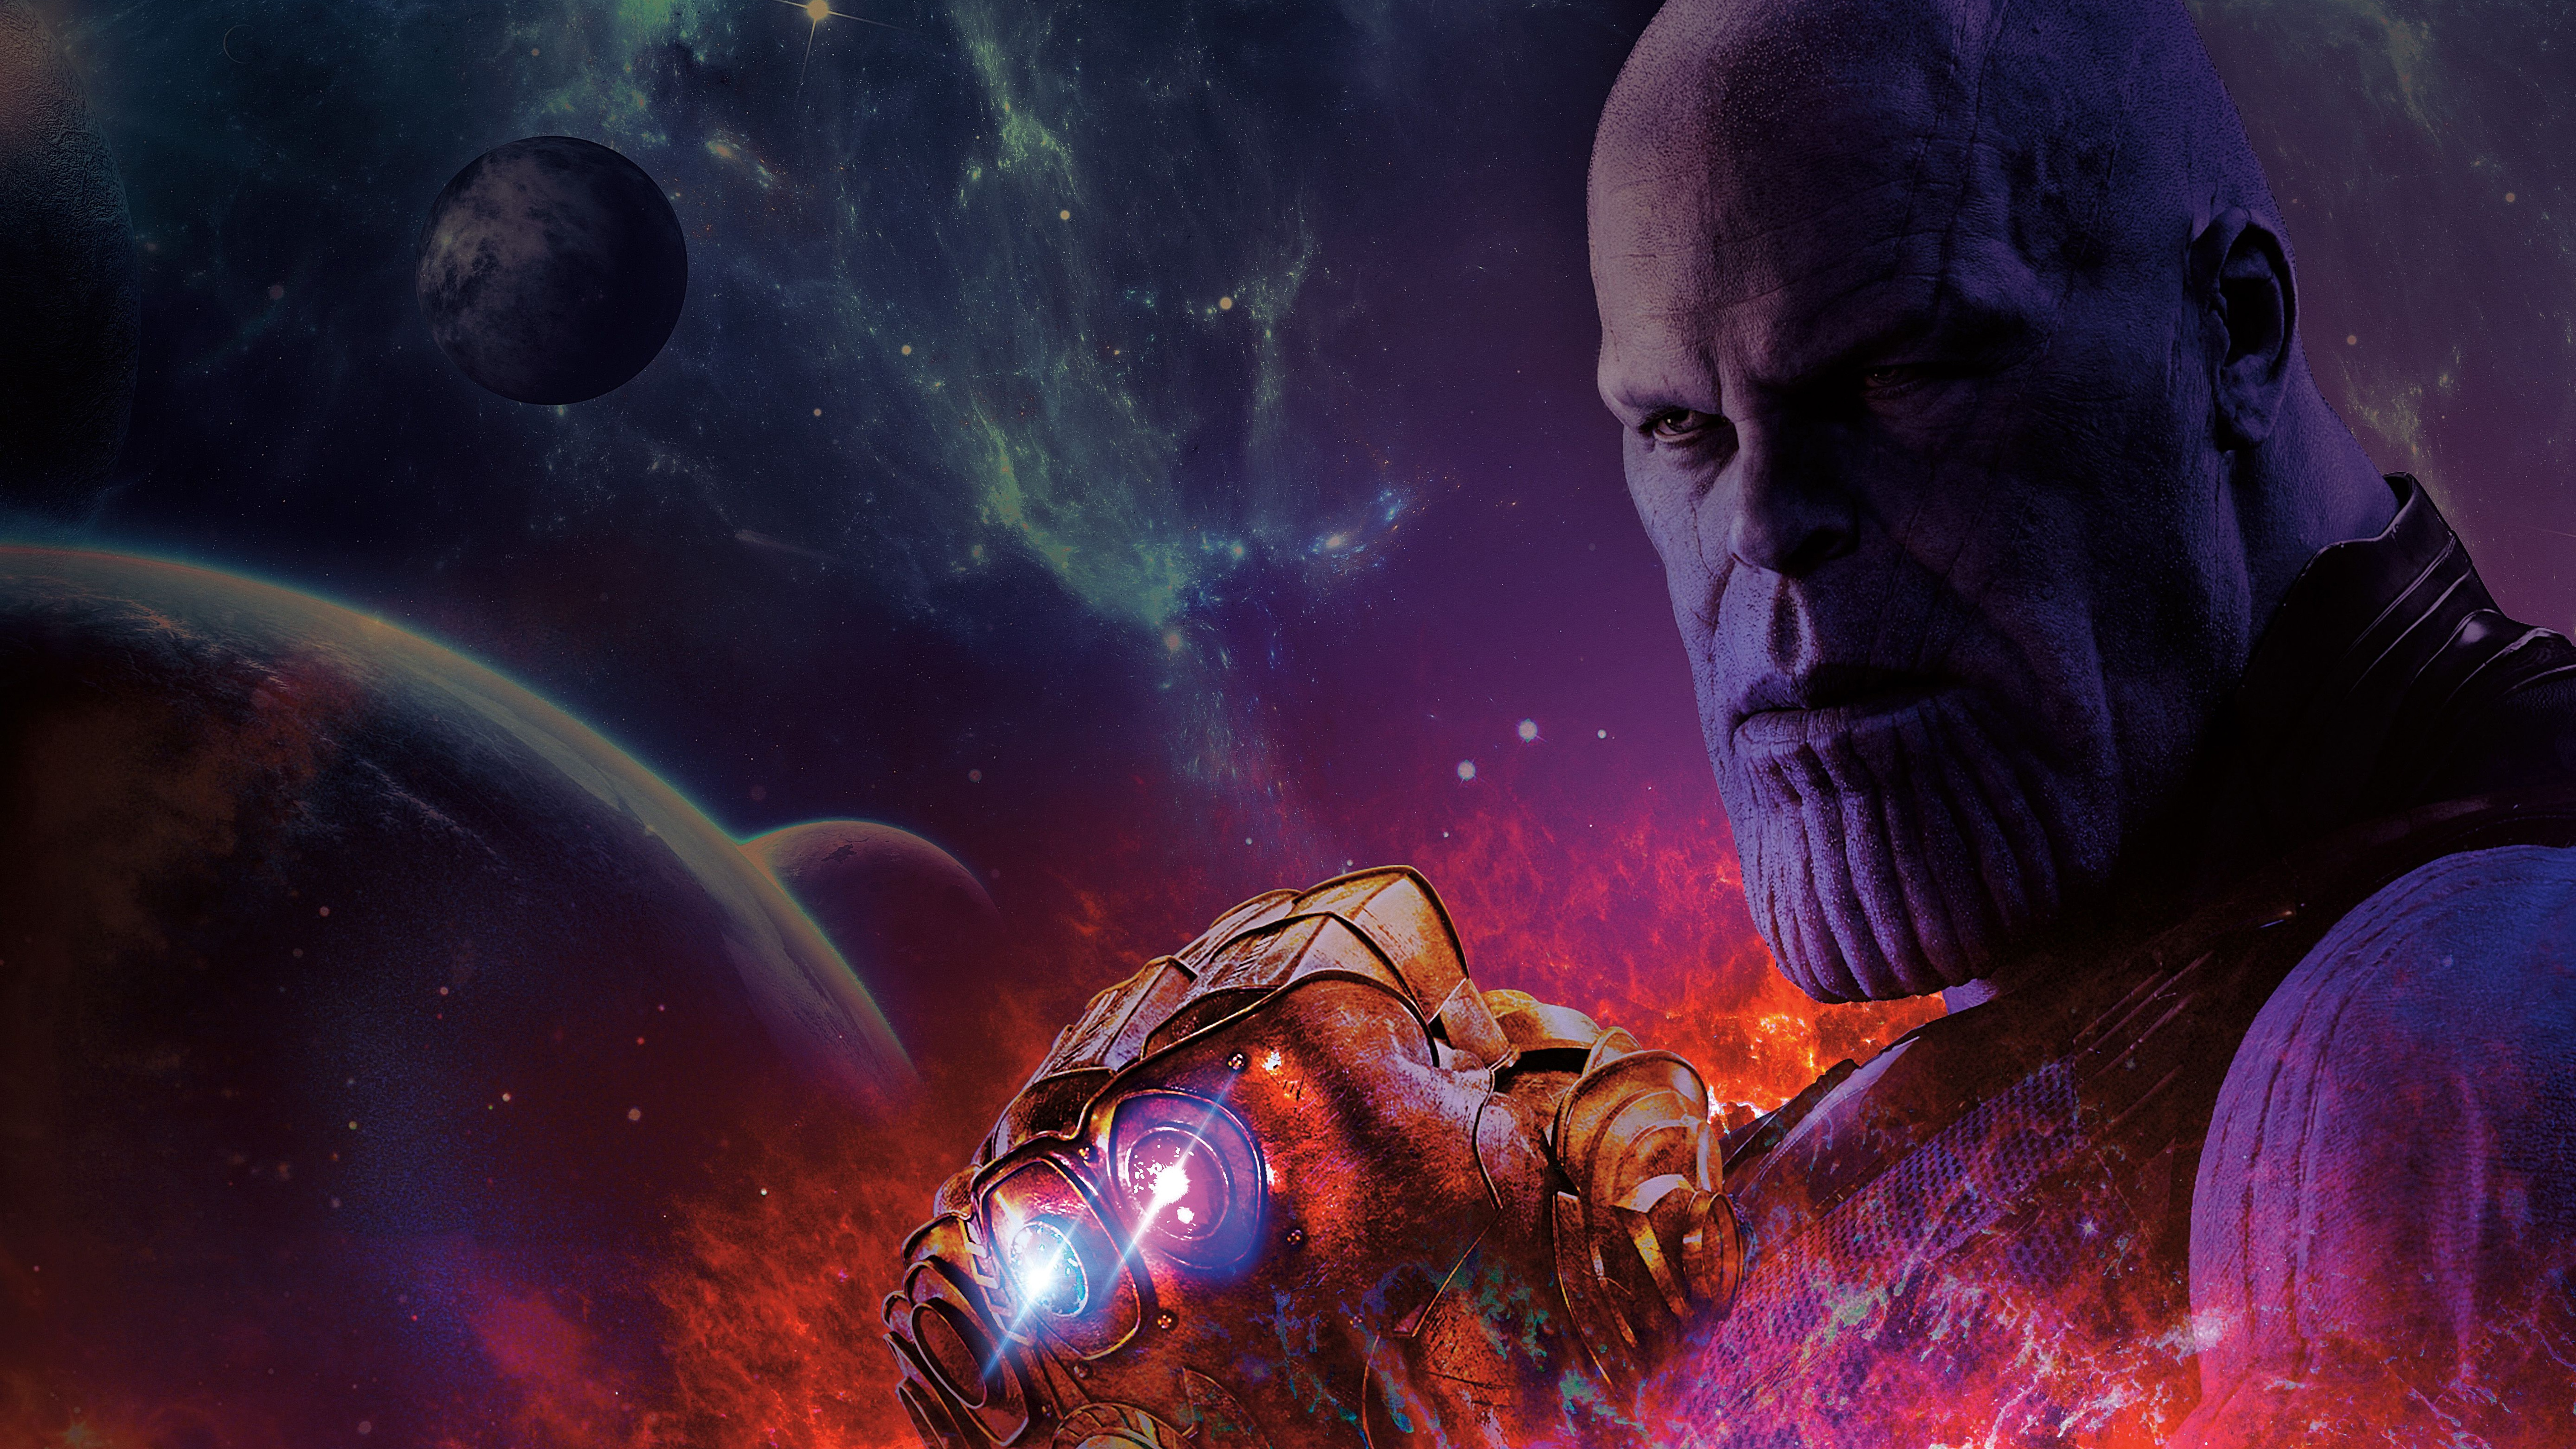 Thanos Hd Wallpaper: Avengers Infinity War Thanos With Gauntlet Infinity Stones